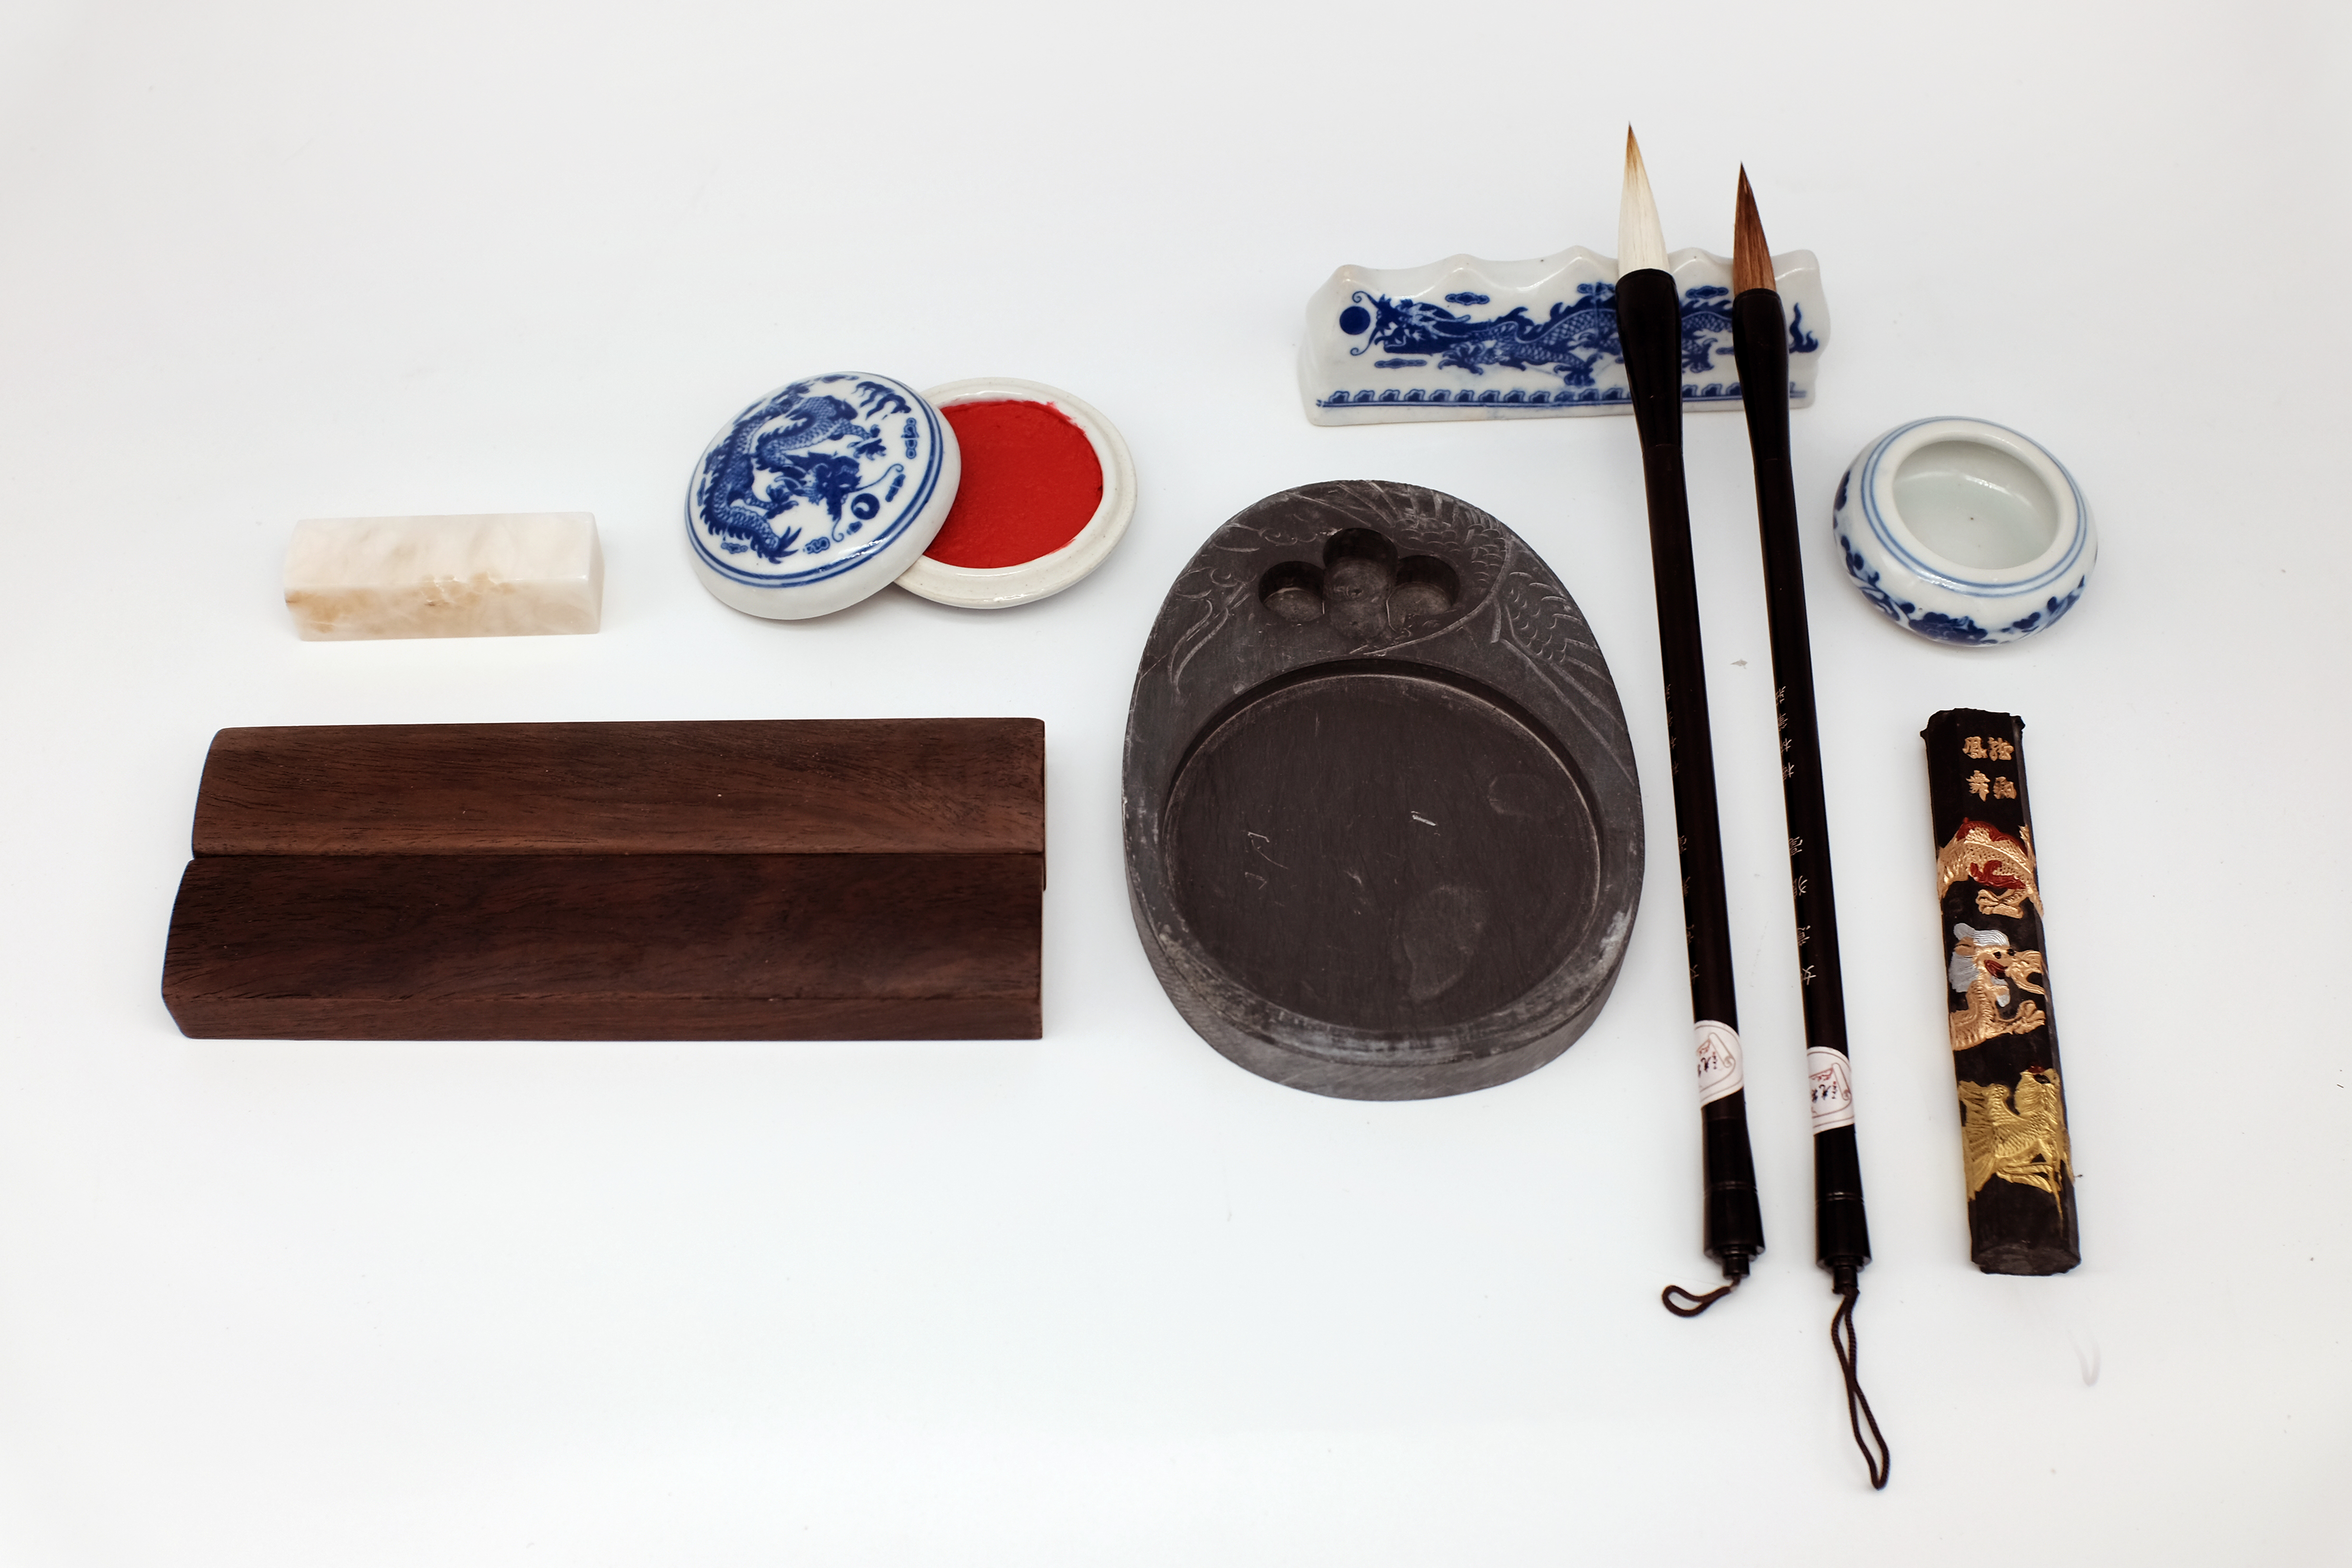 Sumi-e Set l Online Chinese Painting Material Shop I Sunny ...